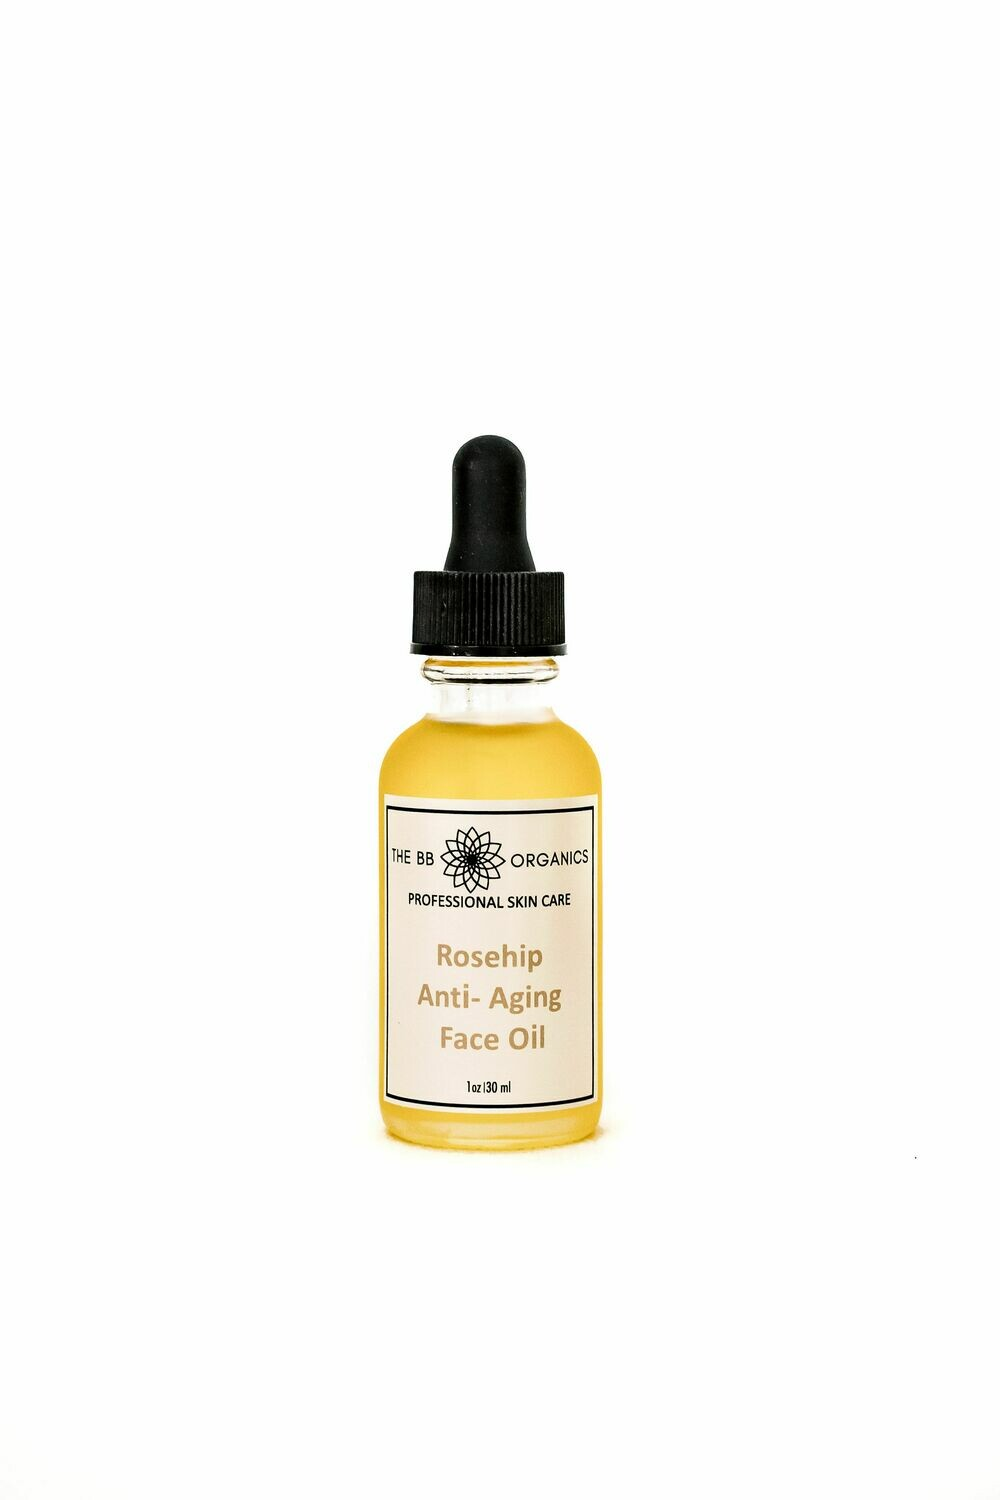 ROSEHIP ANTI-AGING FACE OIL - for all skin type